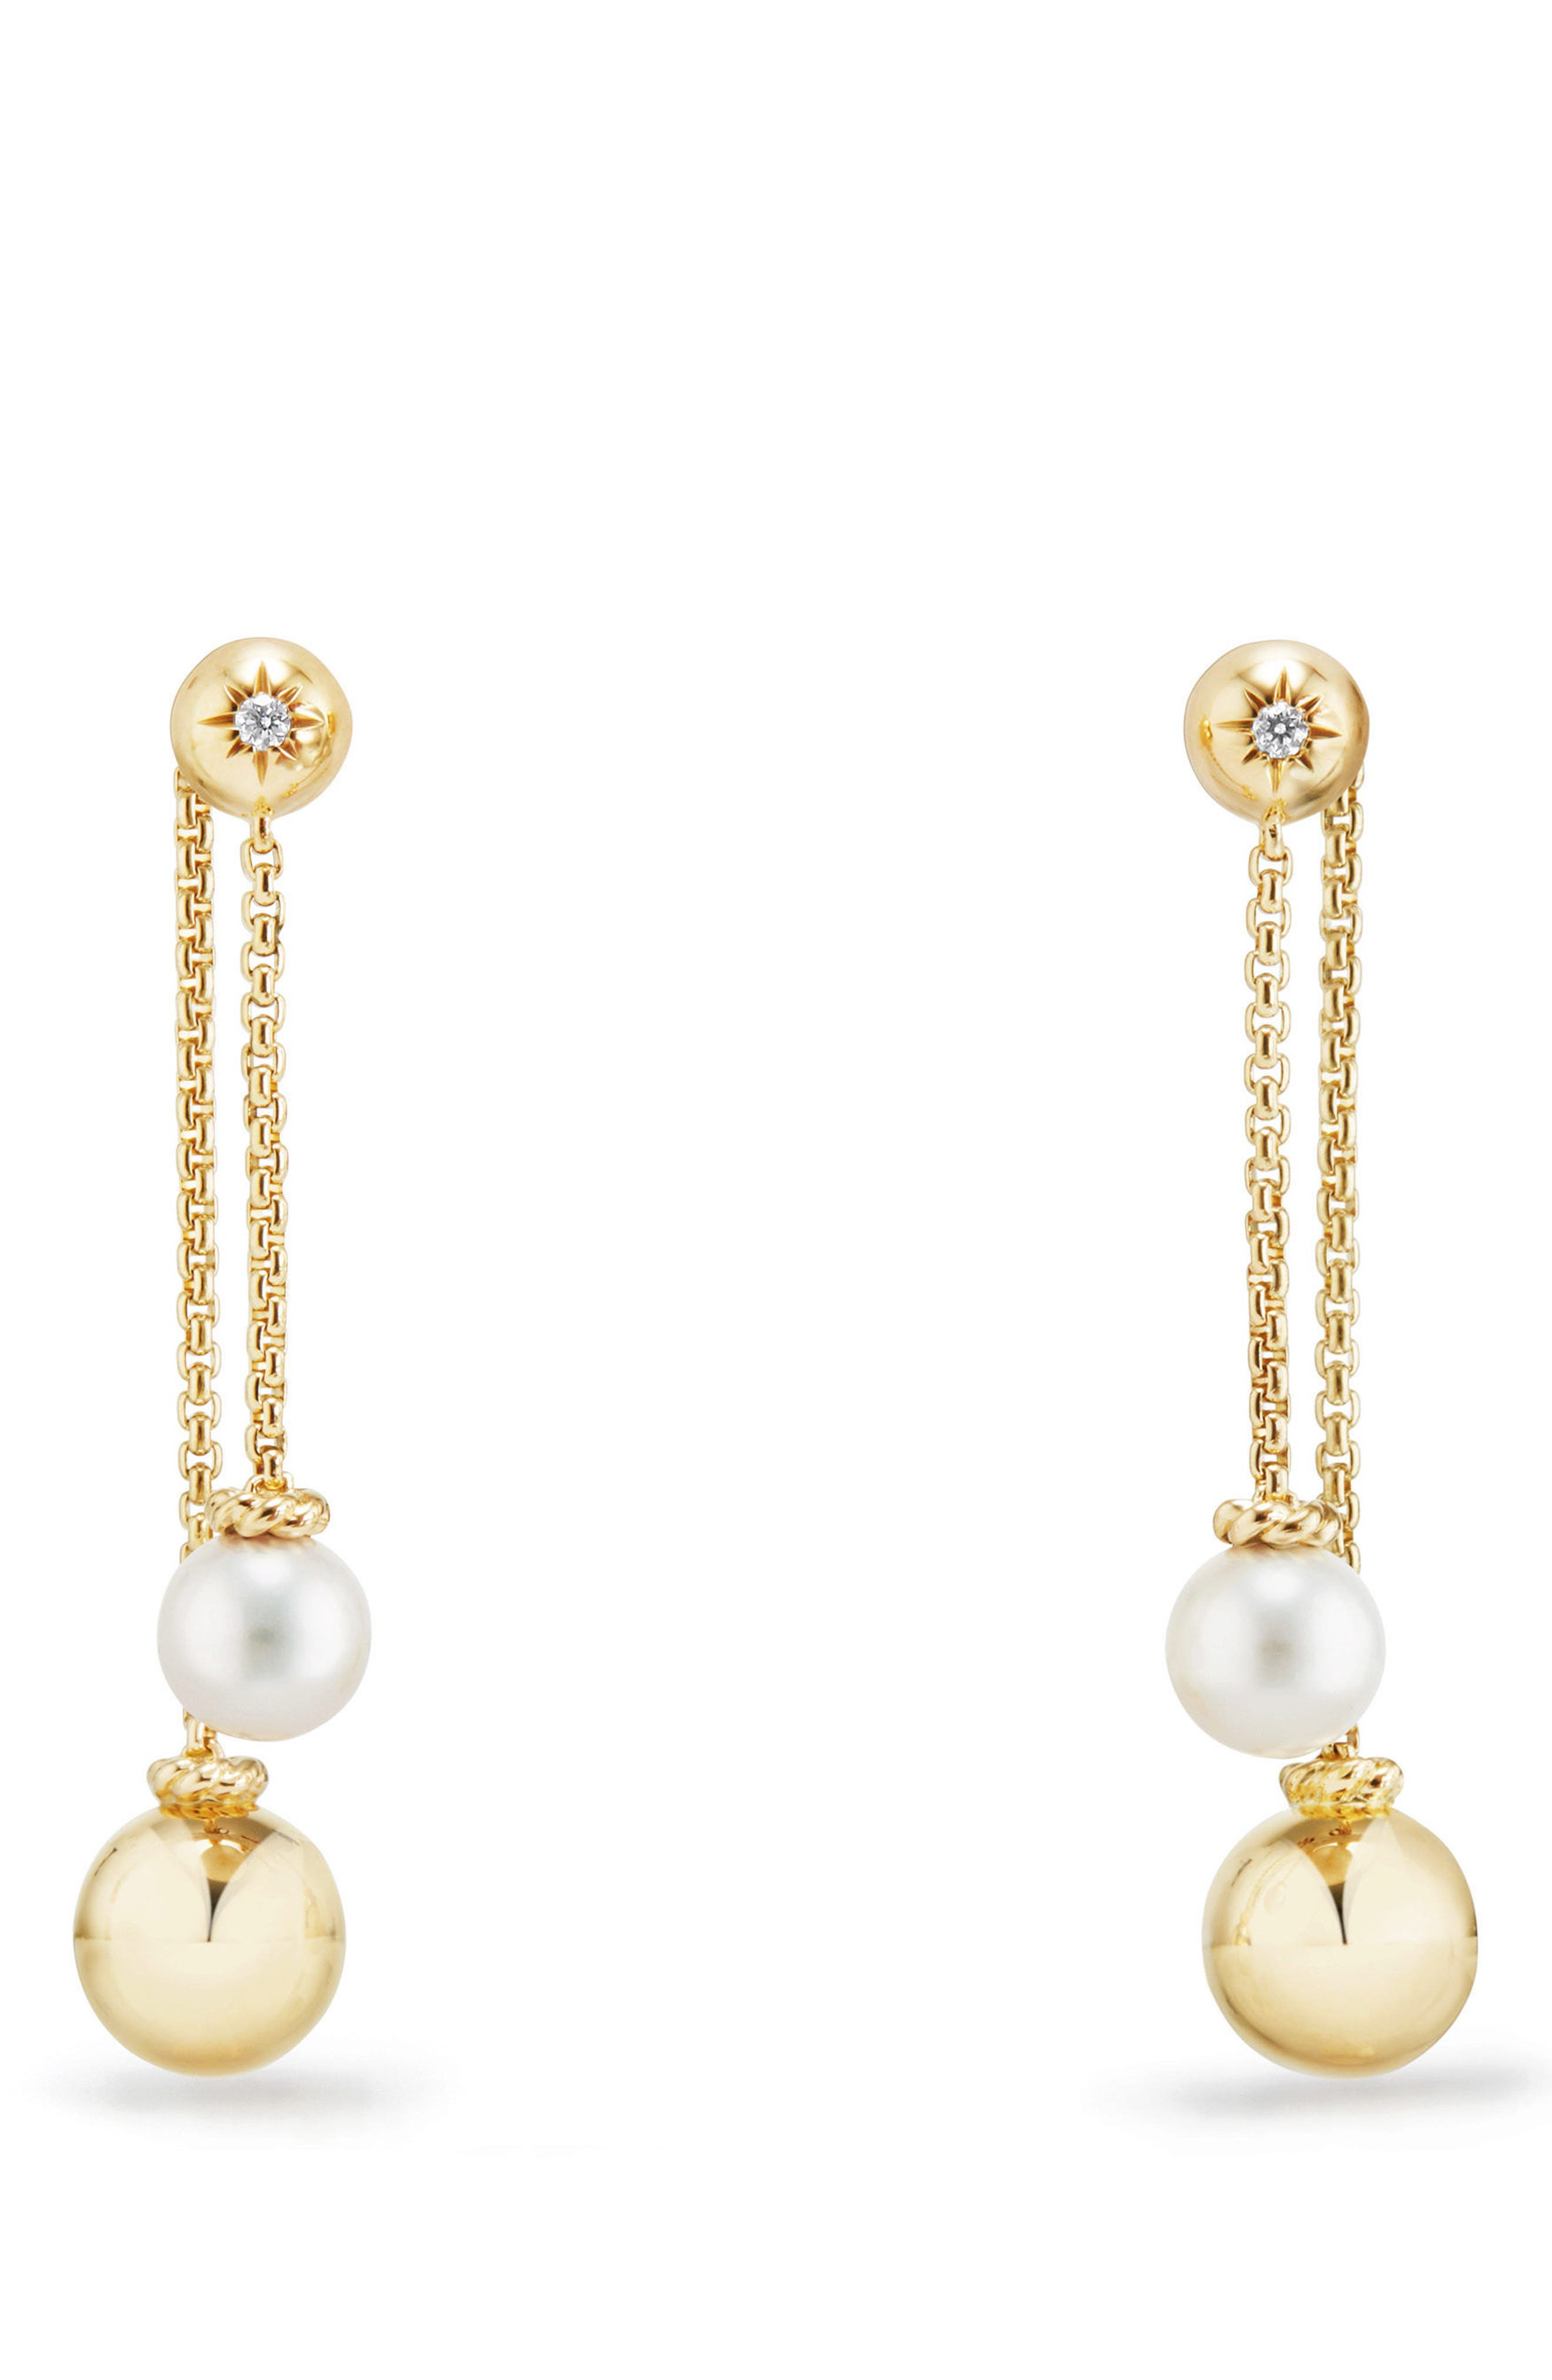 Solari Chain Drop Earrings with Diamonds in 18K Gold,                         Main,                         color, Pearl